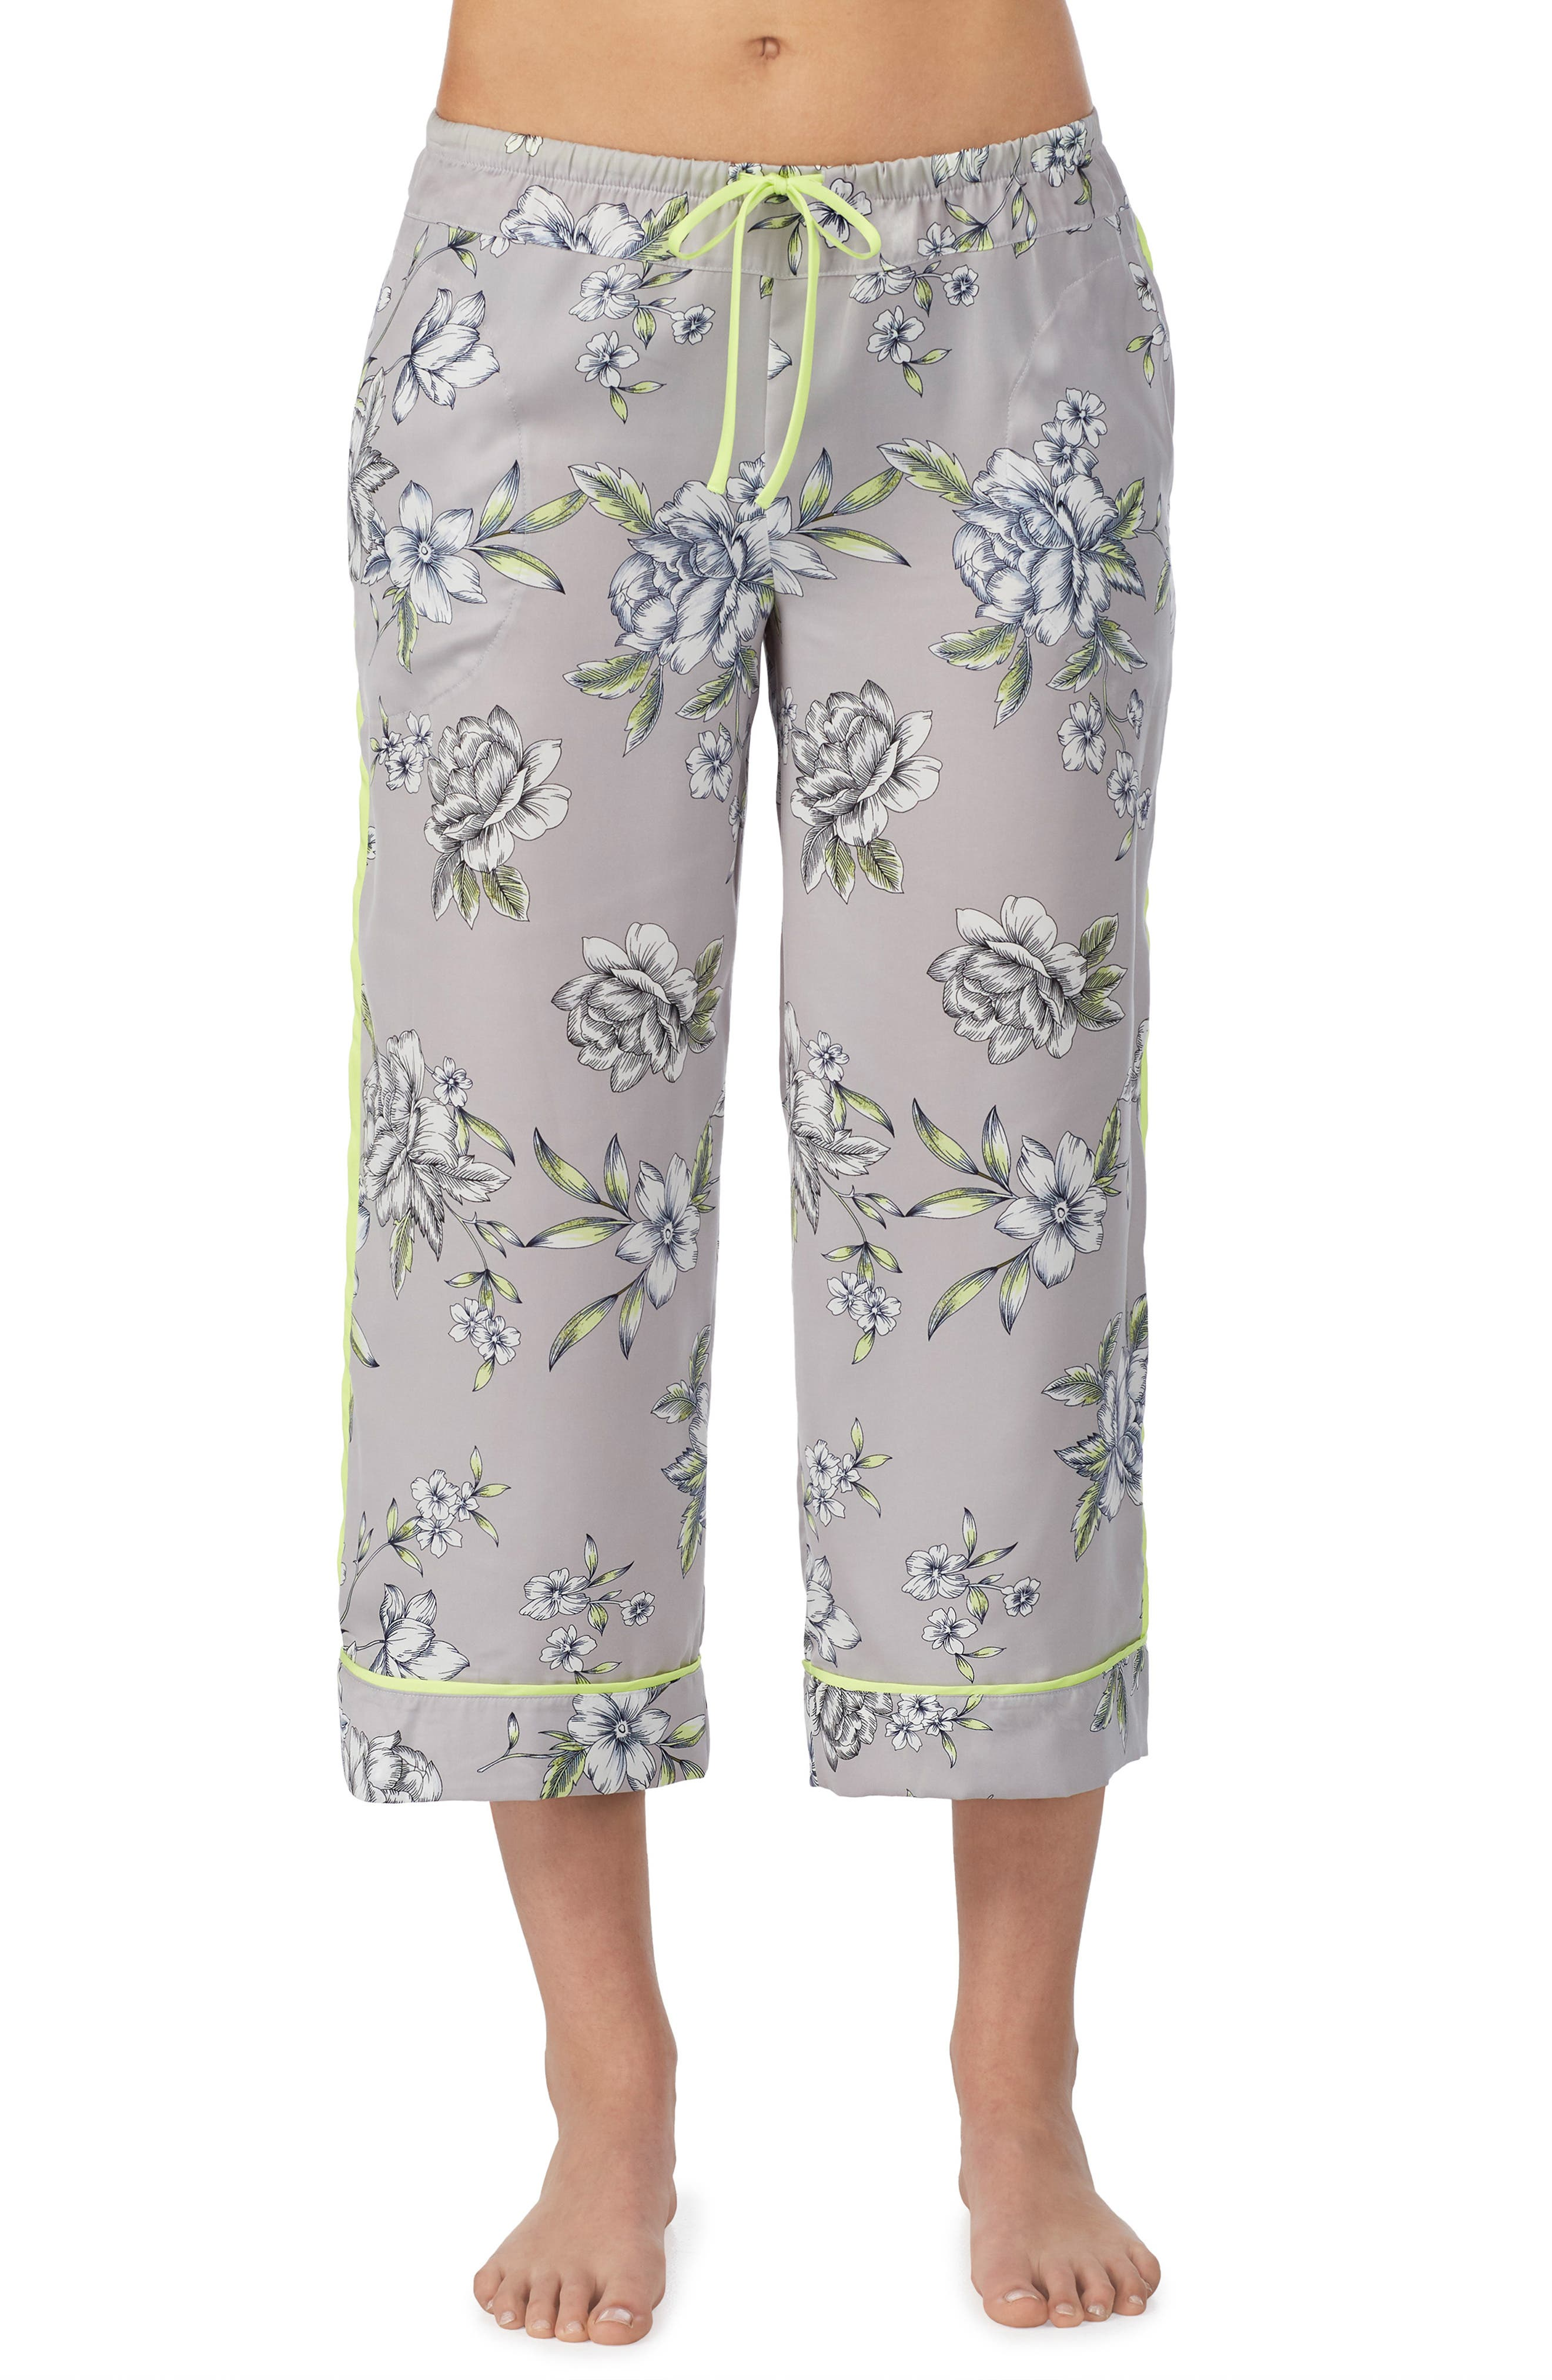 Room Service Cropped Pajamas Pants, Size - (Nordstrom Exclusive)